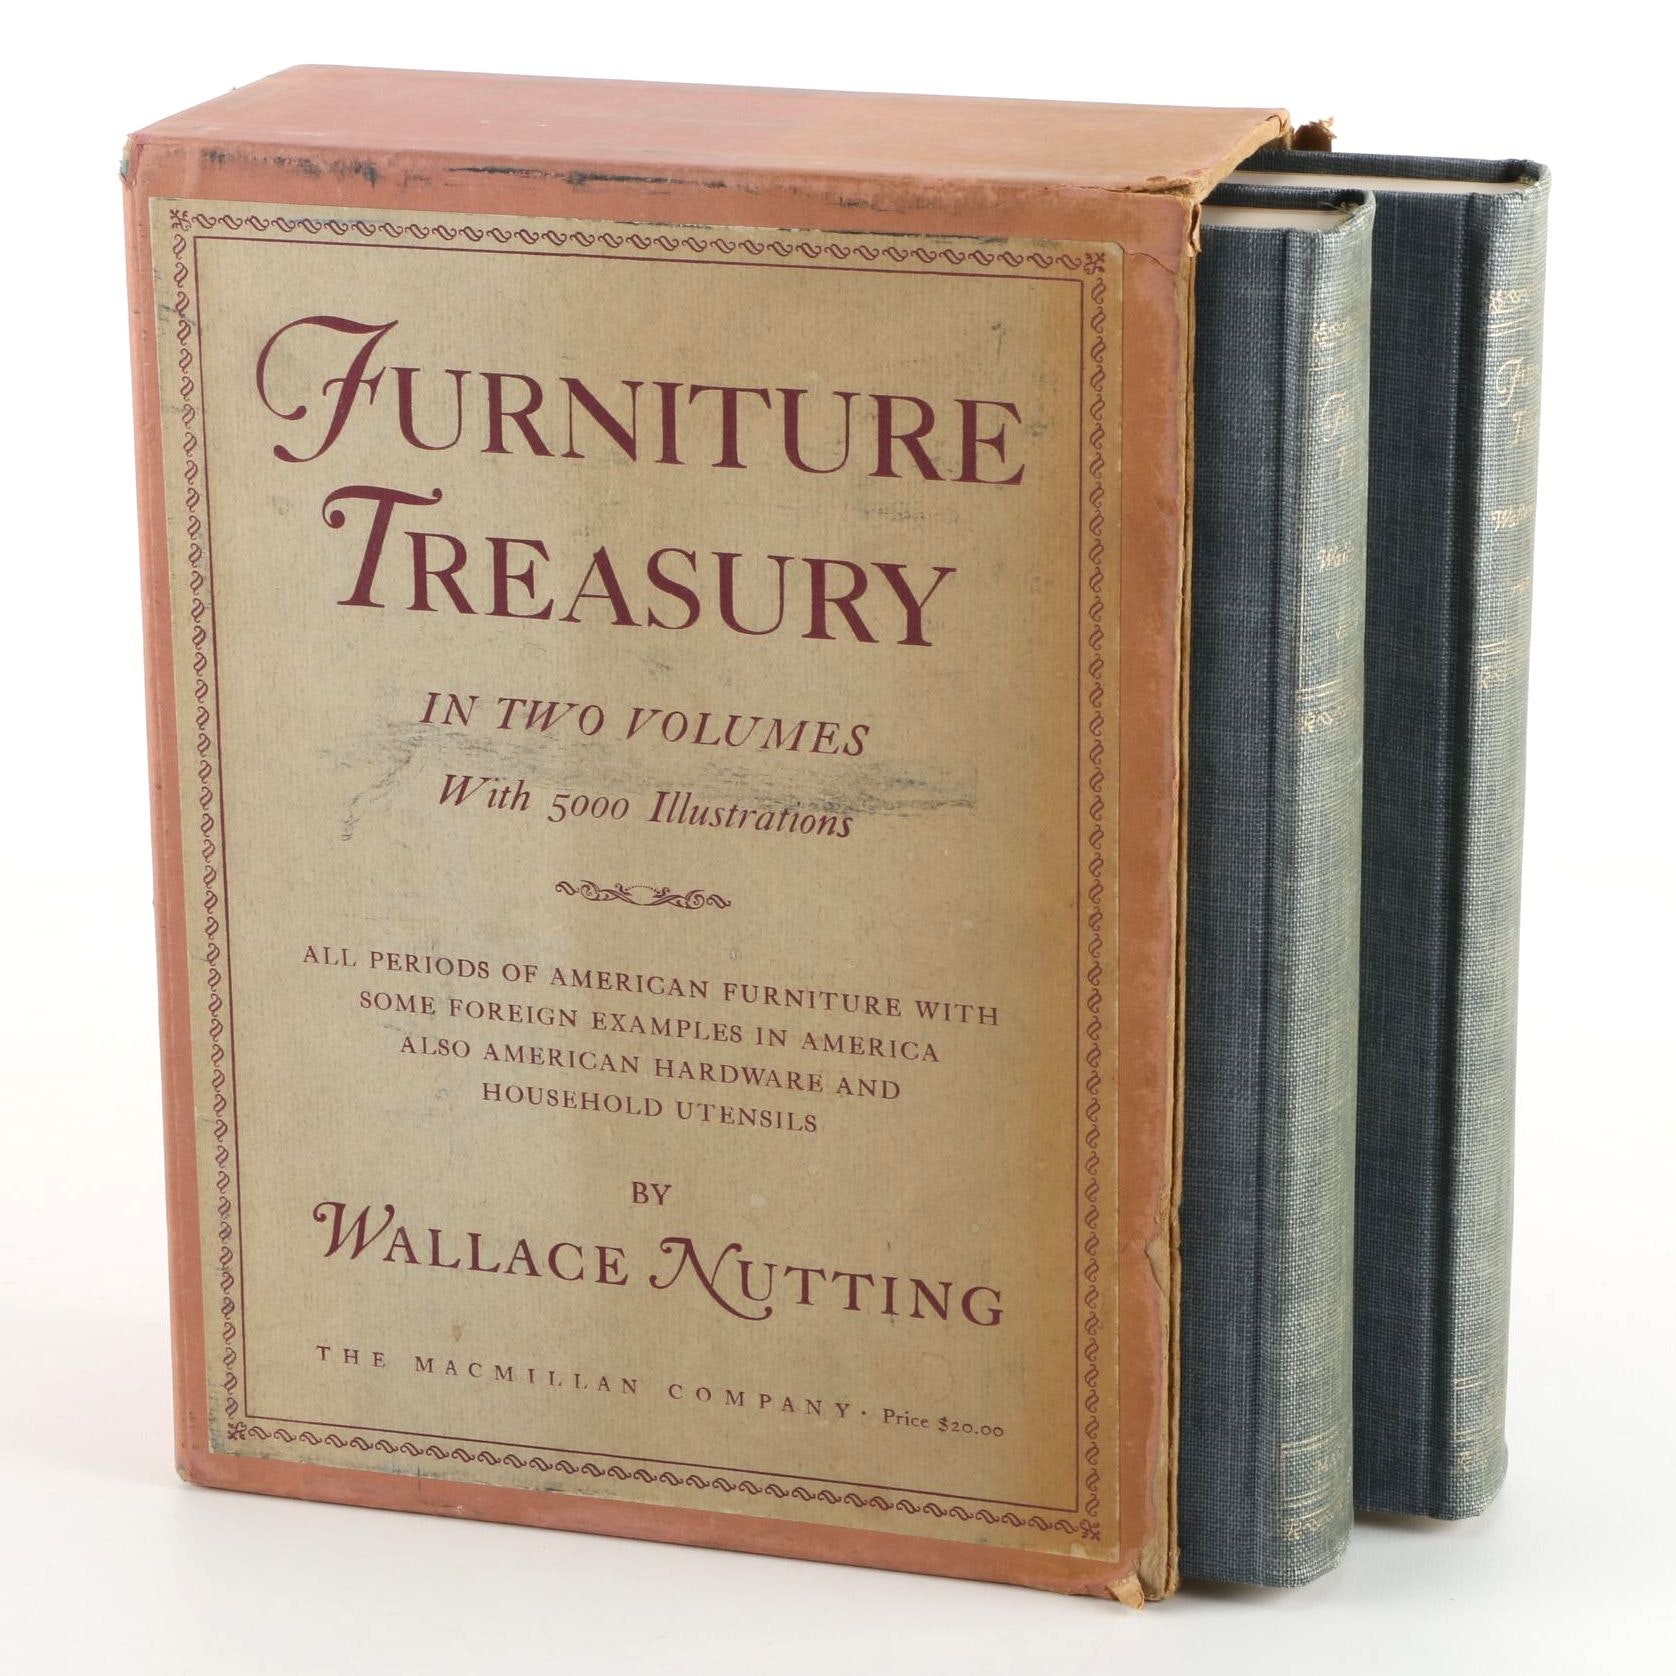 1948 furniture treasury volumes i and ii by wallace nutting ebth rh ebth com Toluca Mexico Furniture 1948 1948 furniture style